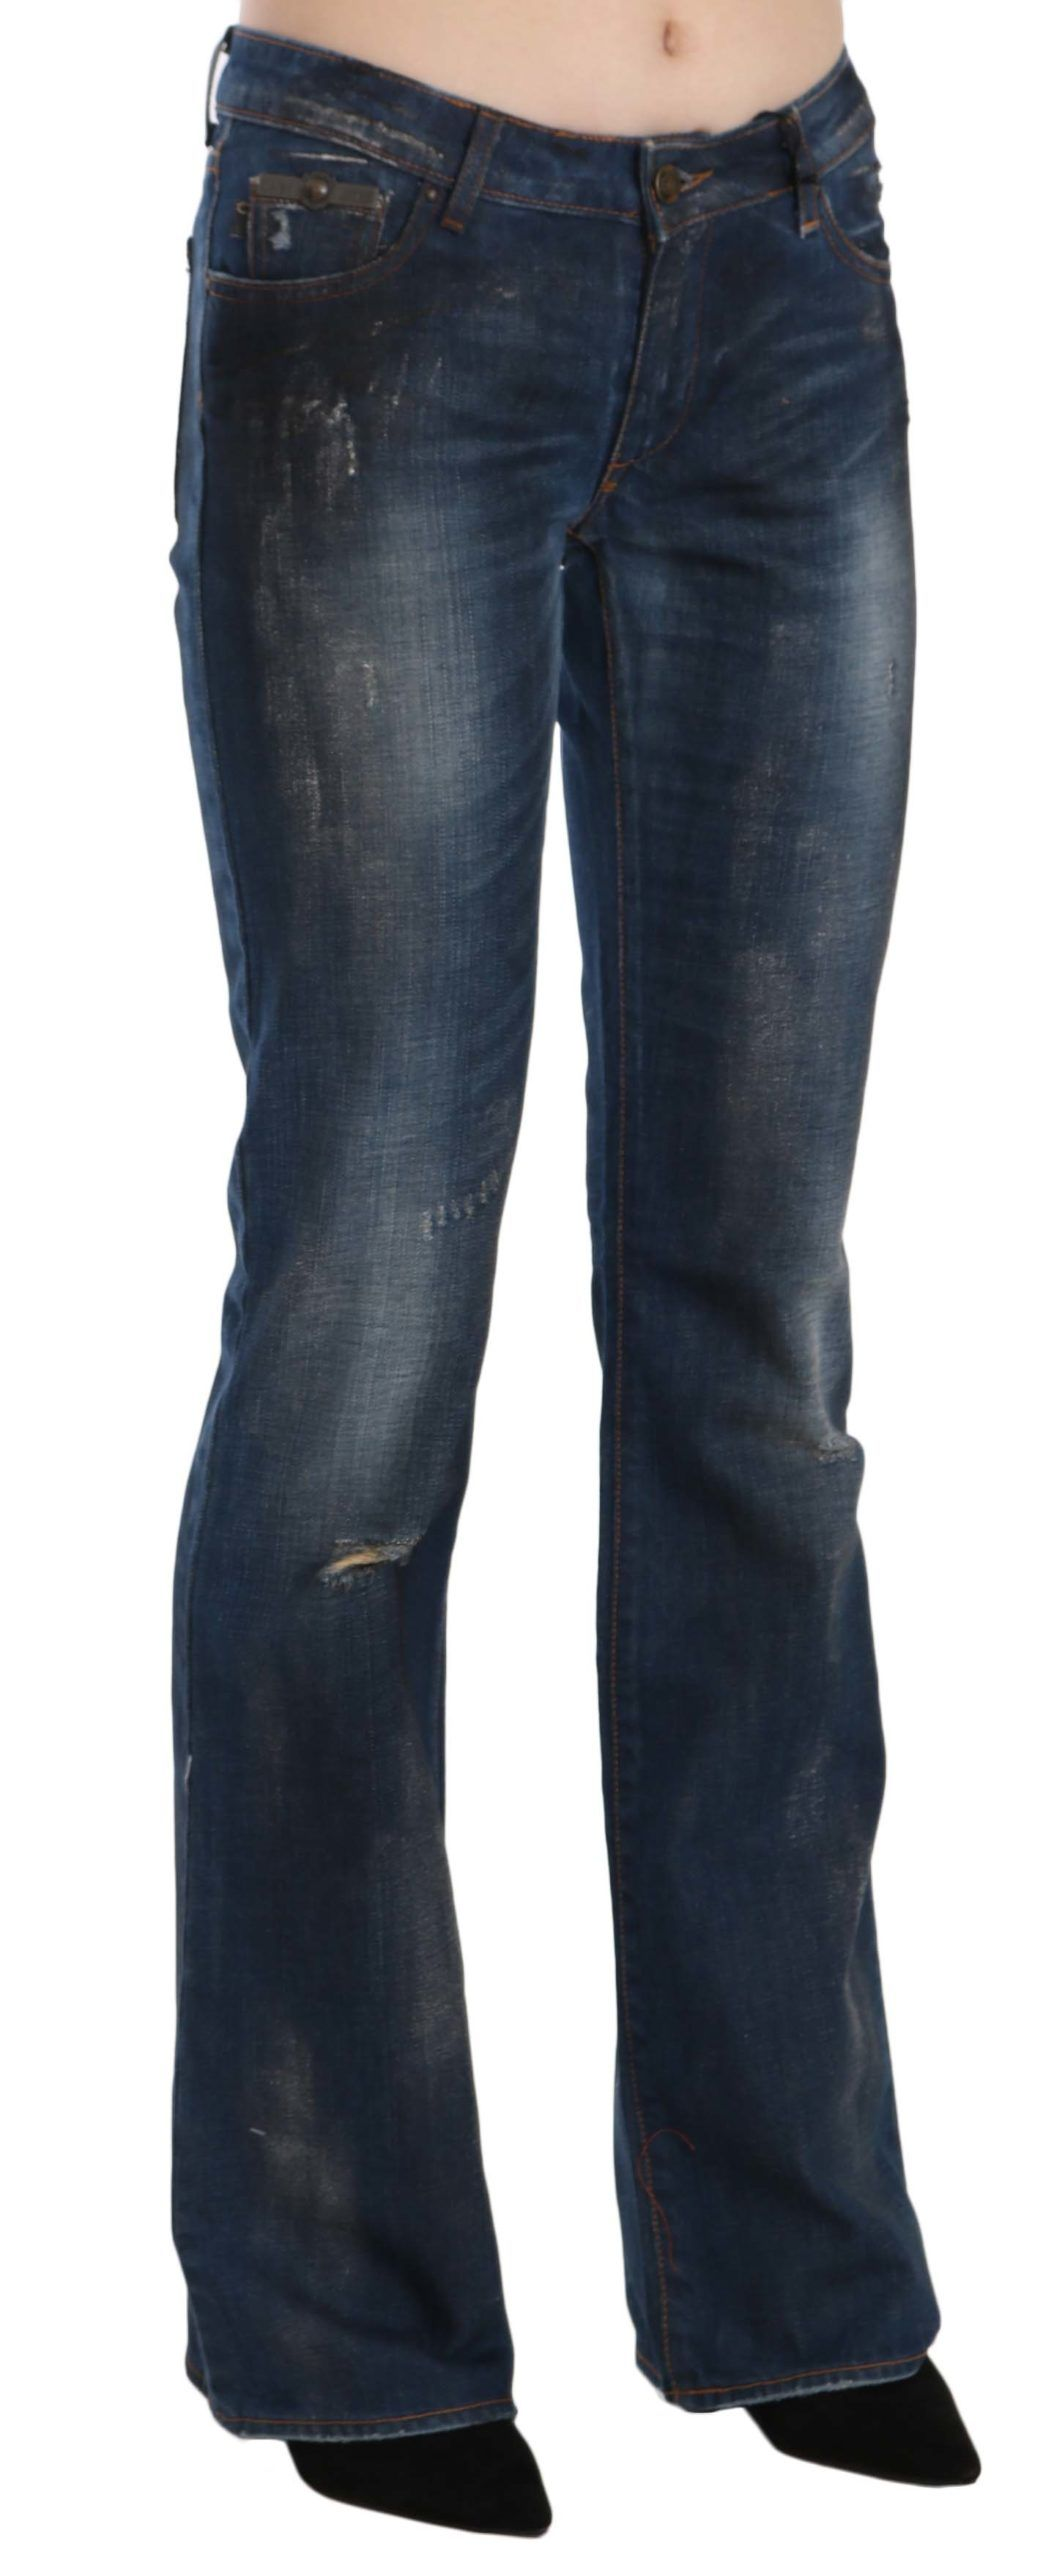 Just Cavalli Blue Washed Ripped Low Waist Straight Denim Pants